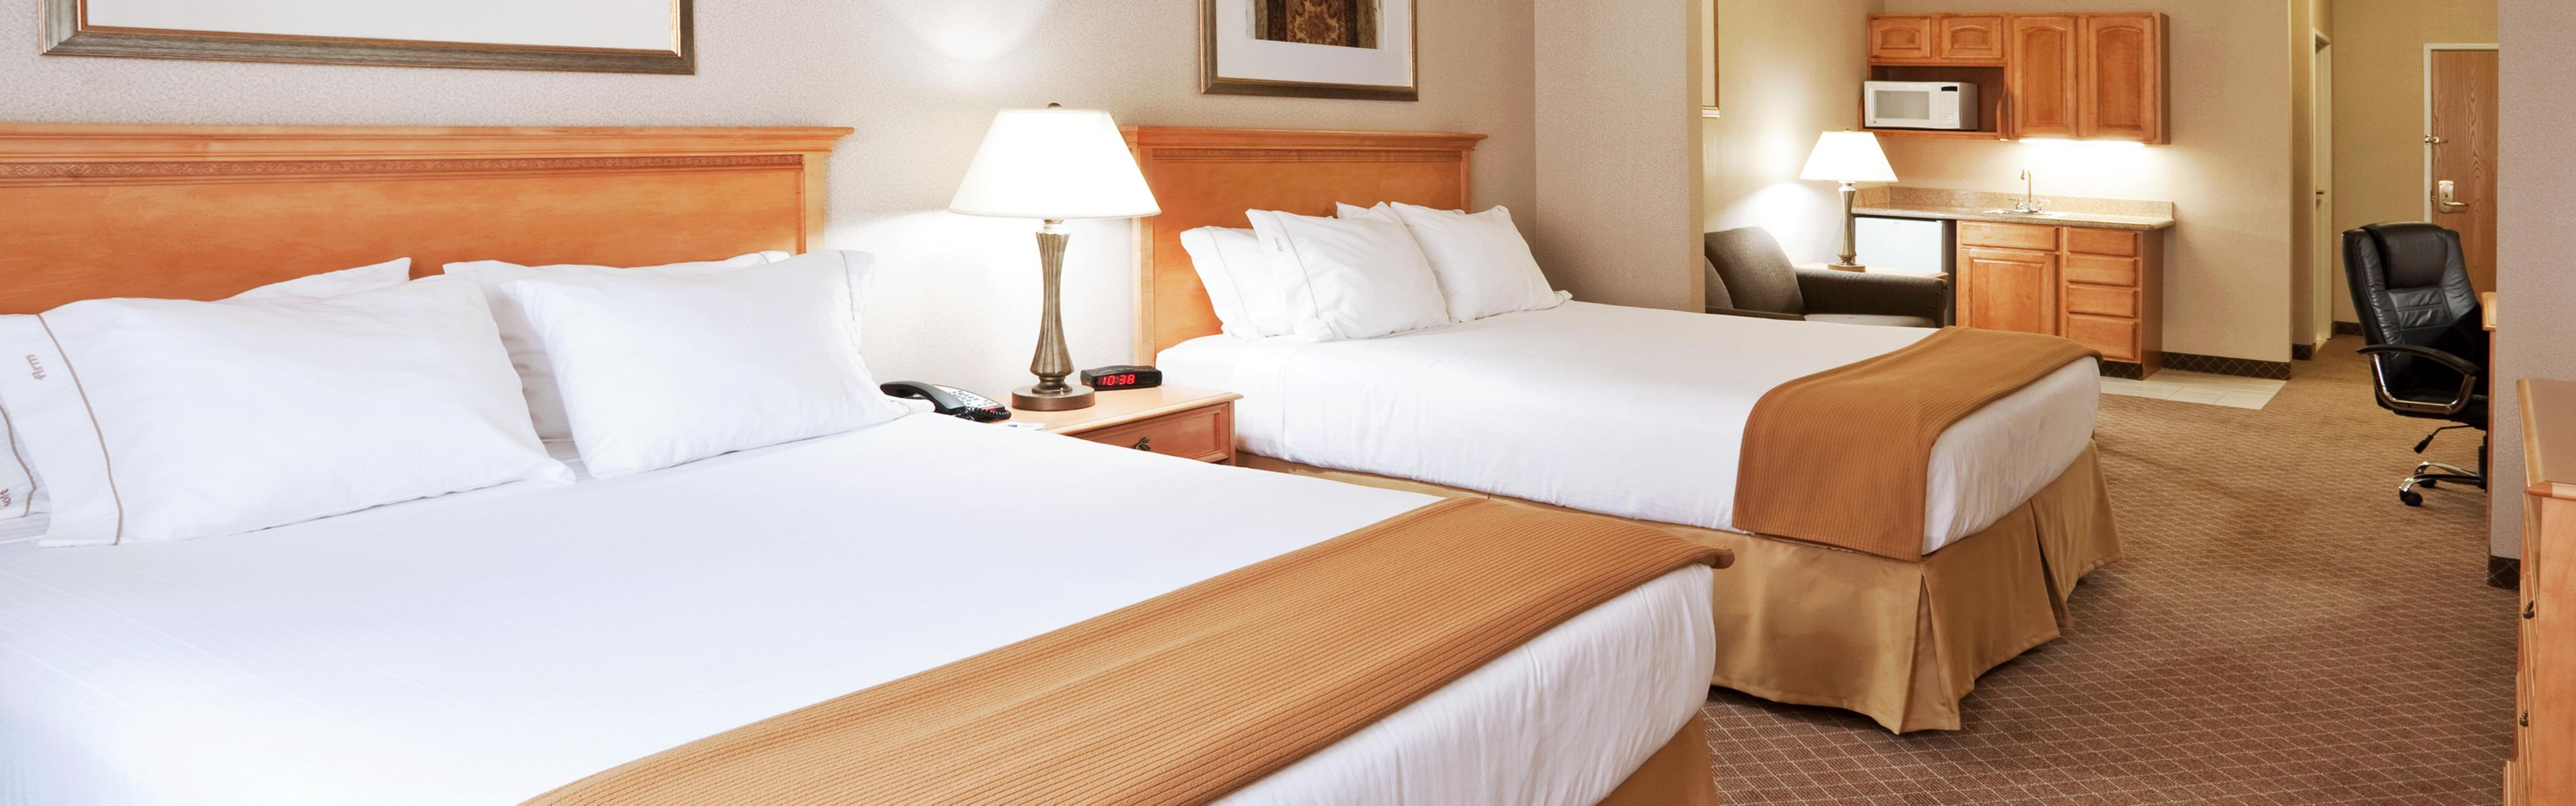 Holiday Inn Express & Suites Chesterfield - Selfridge Area image 1